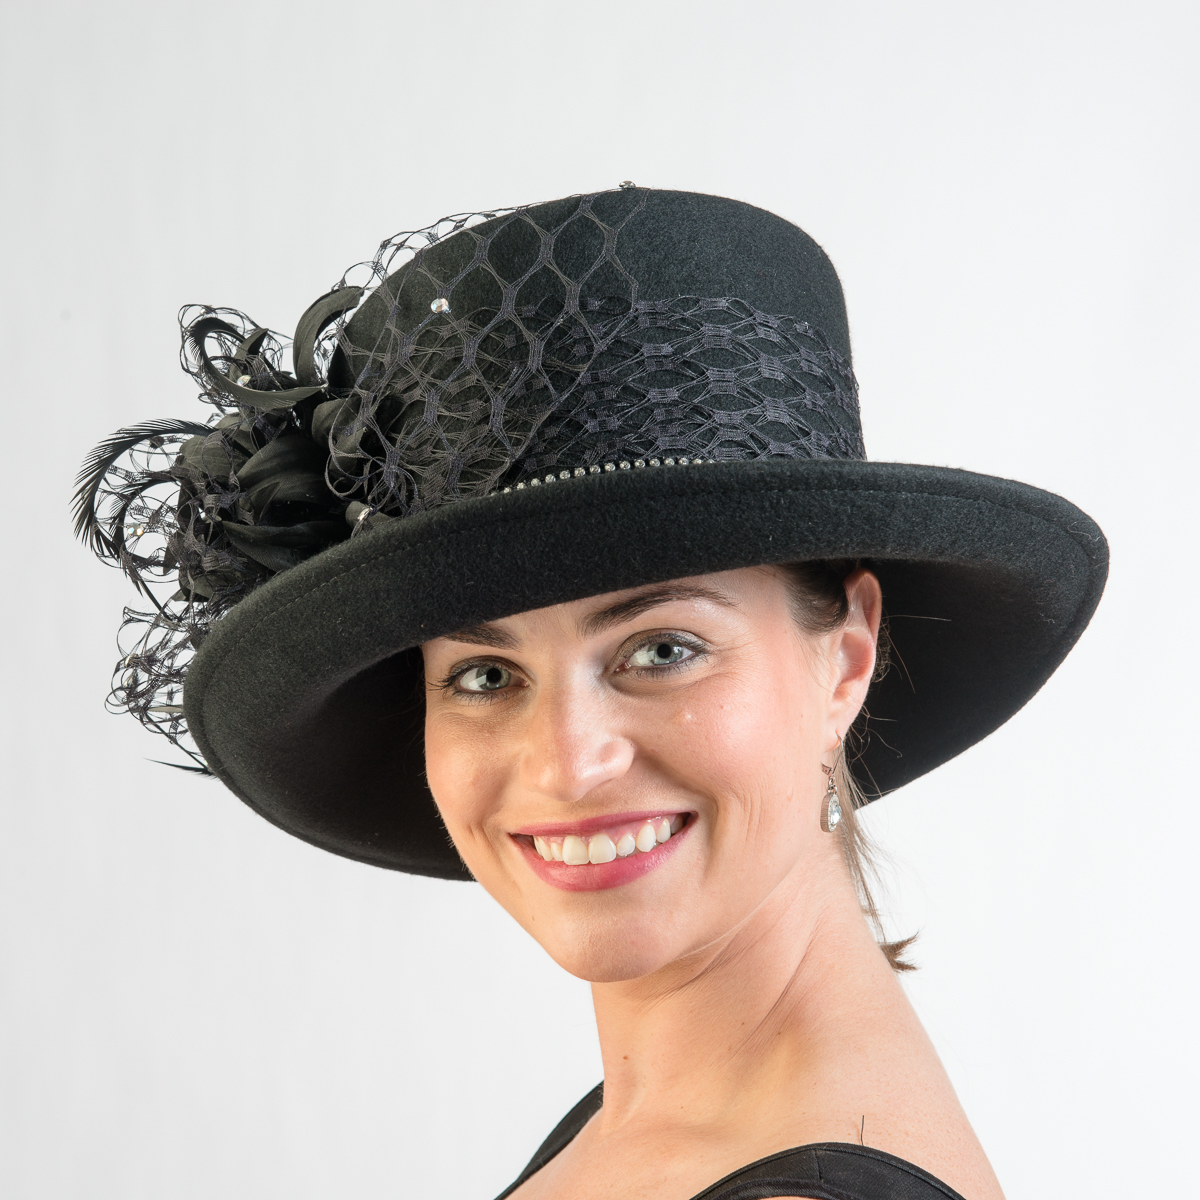 Find great deals on eBay for black veil hat. Shop with confidence.